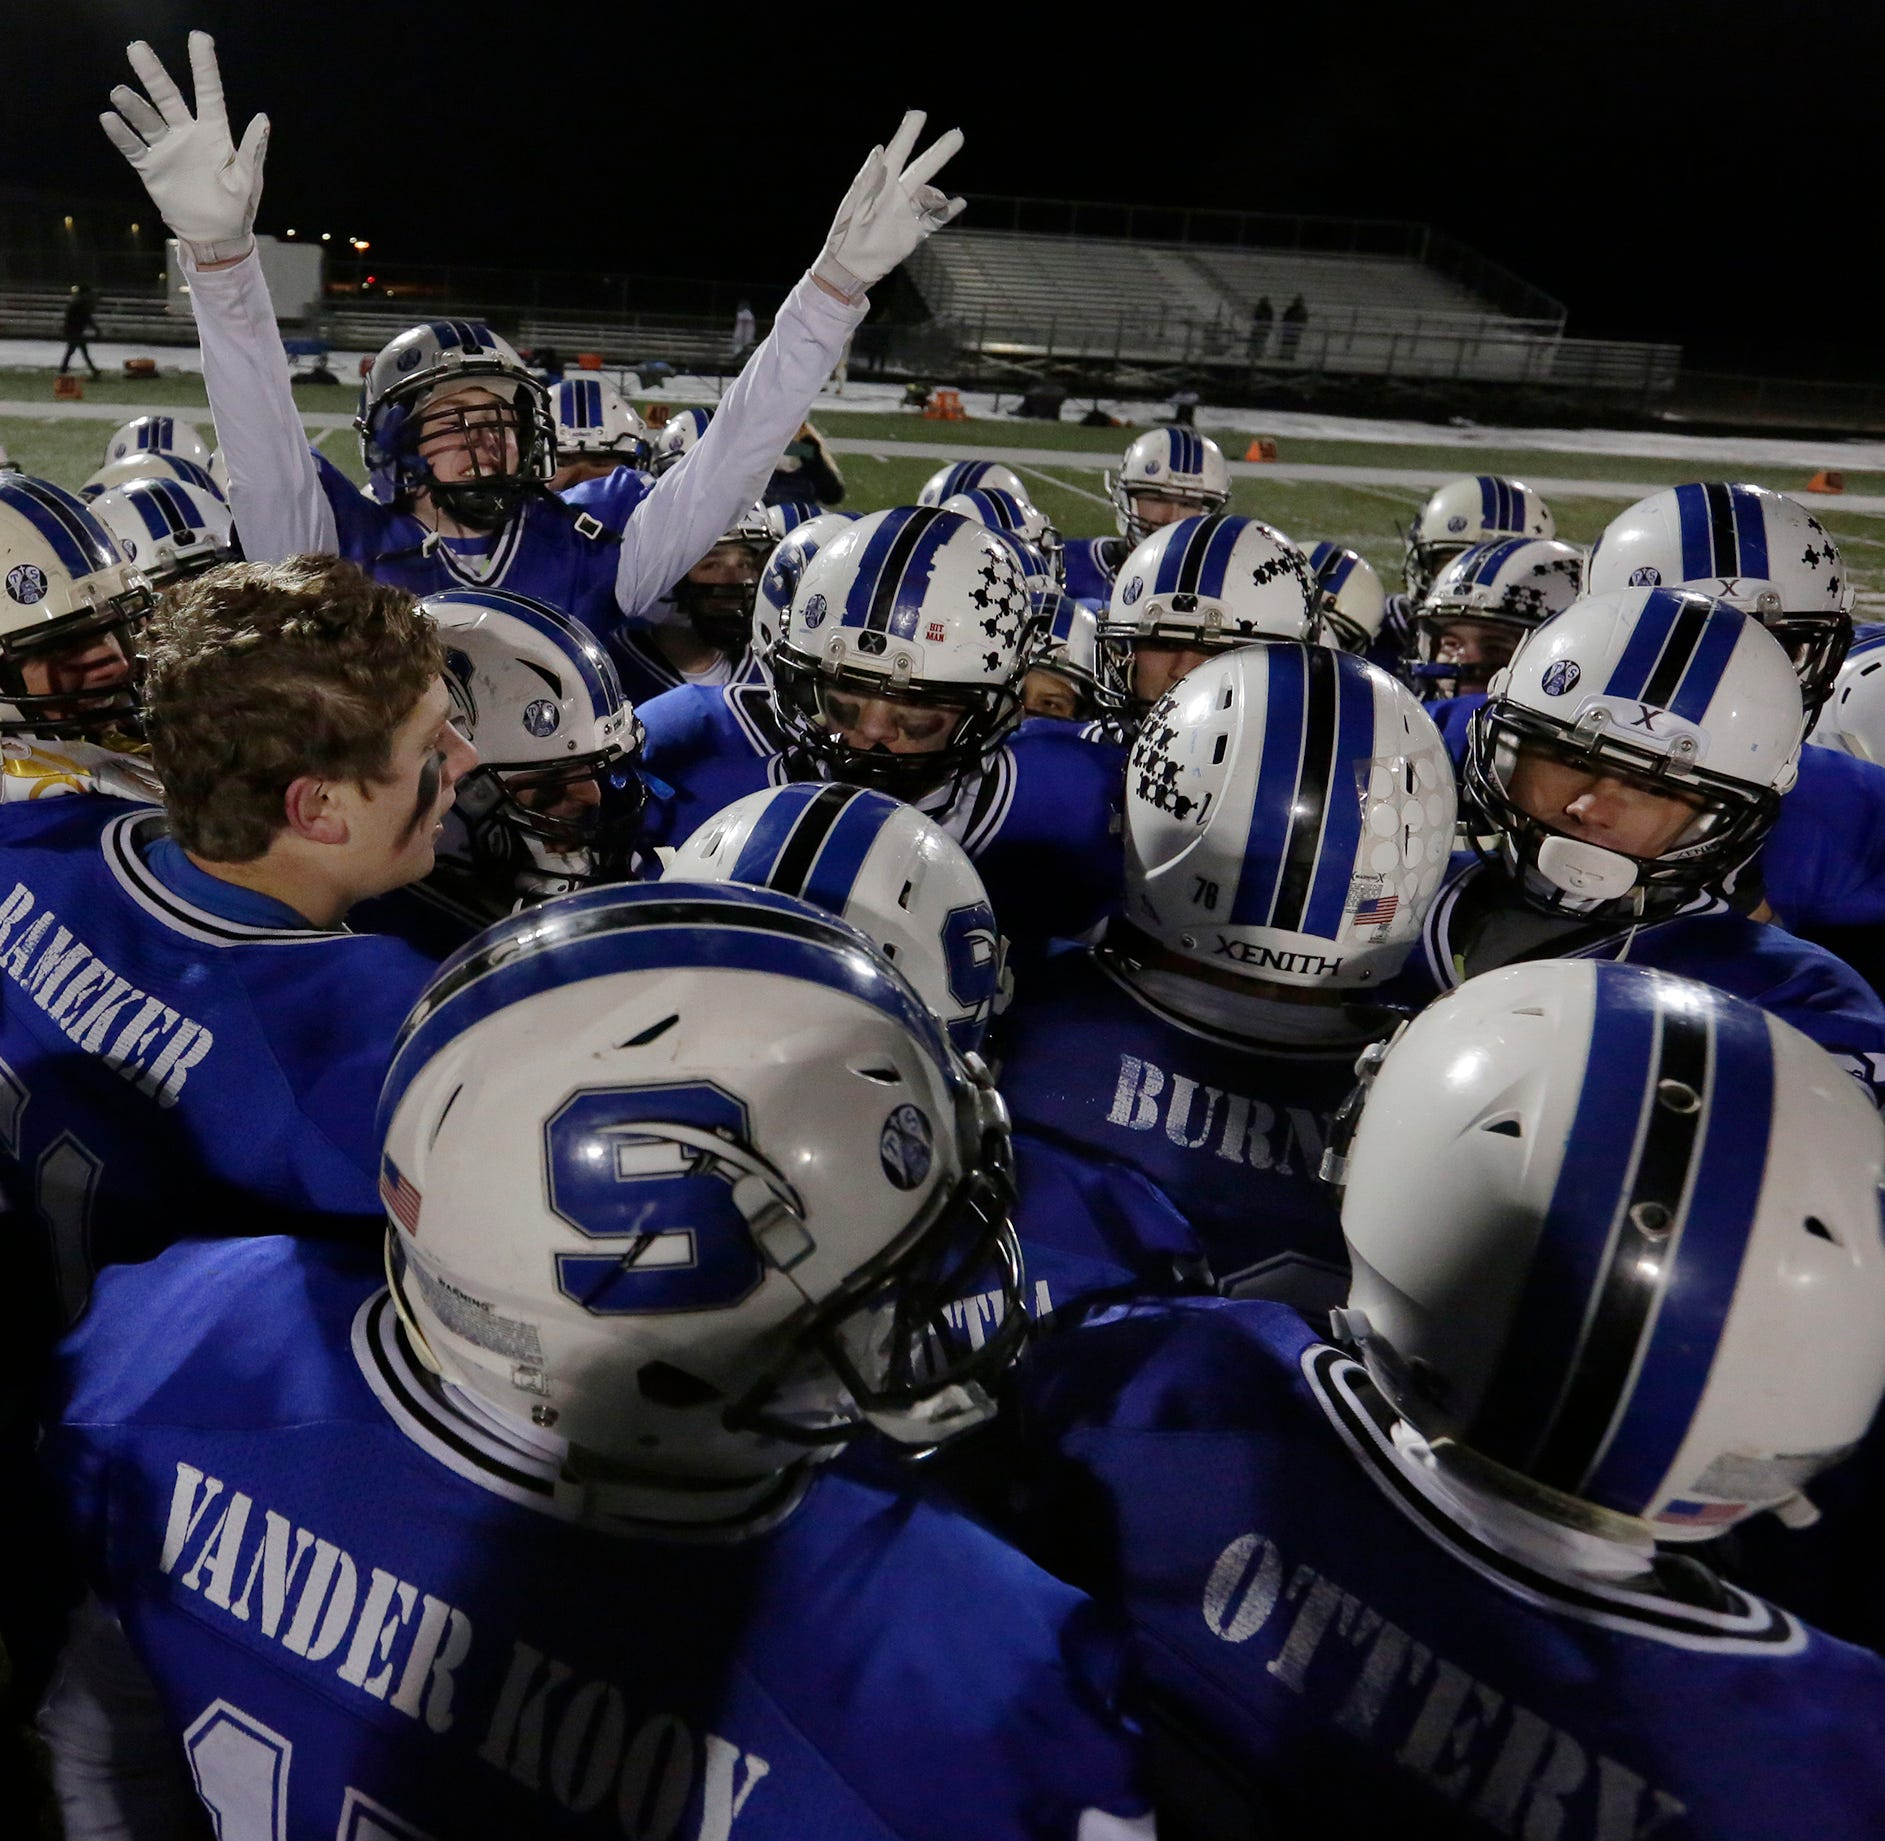 WIAA football playoffs: Springs dominates while Fond du Lac loses heartbreaker